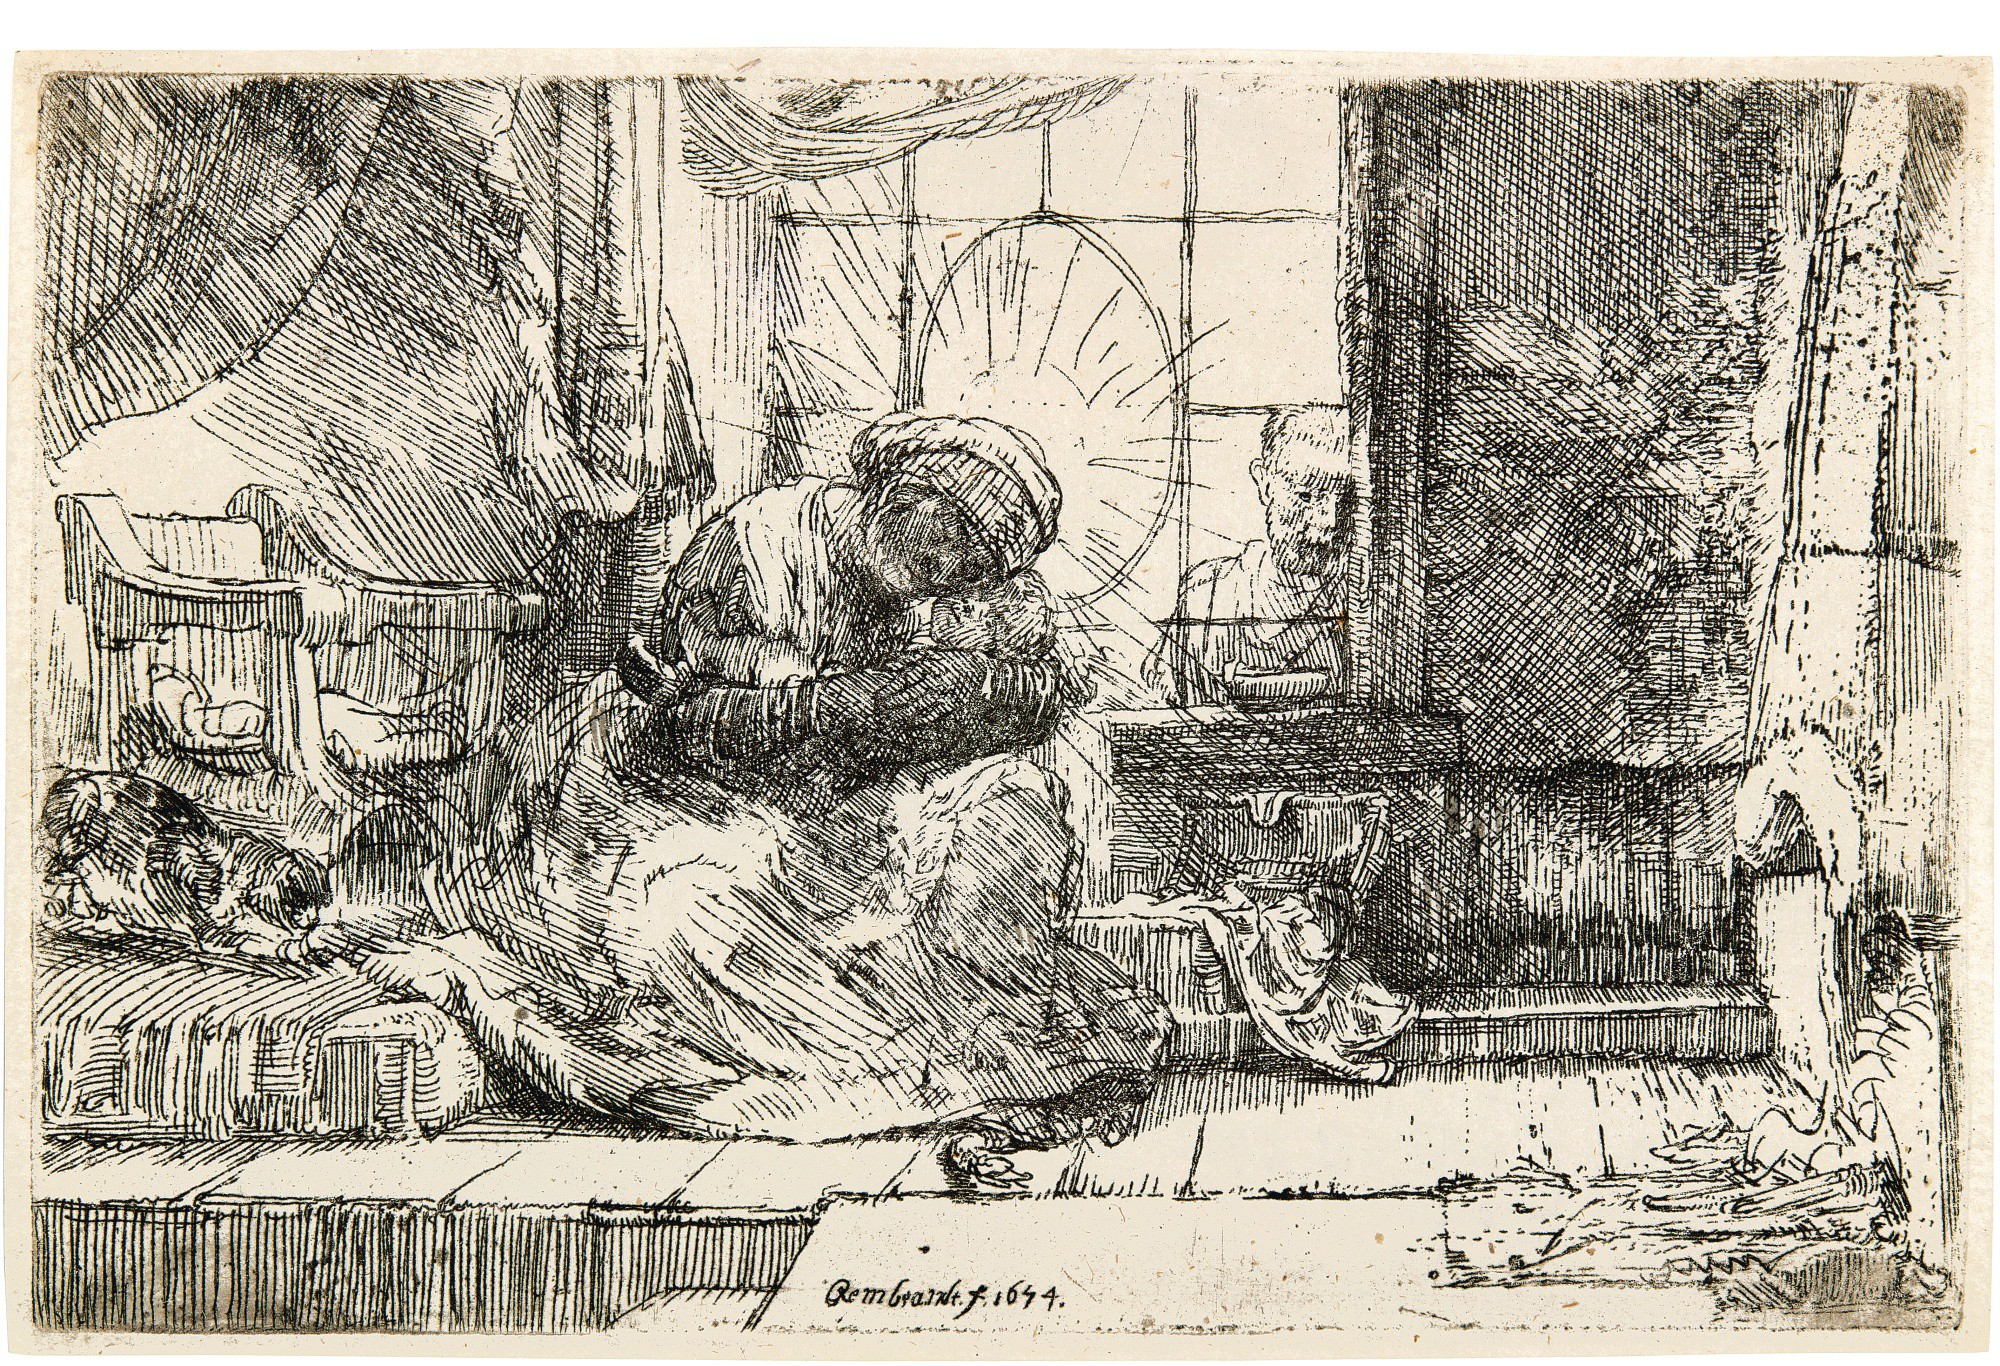 REMBRANDT HARMENSZ. VAN RIJN | THE VIRGIN AND CHILD WITH THE CAT AND THE SNAKE (B., HOLL. 63; NEW HOLL. 278; H. 275)